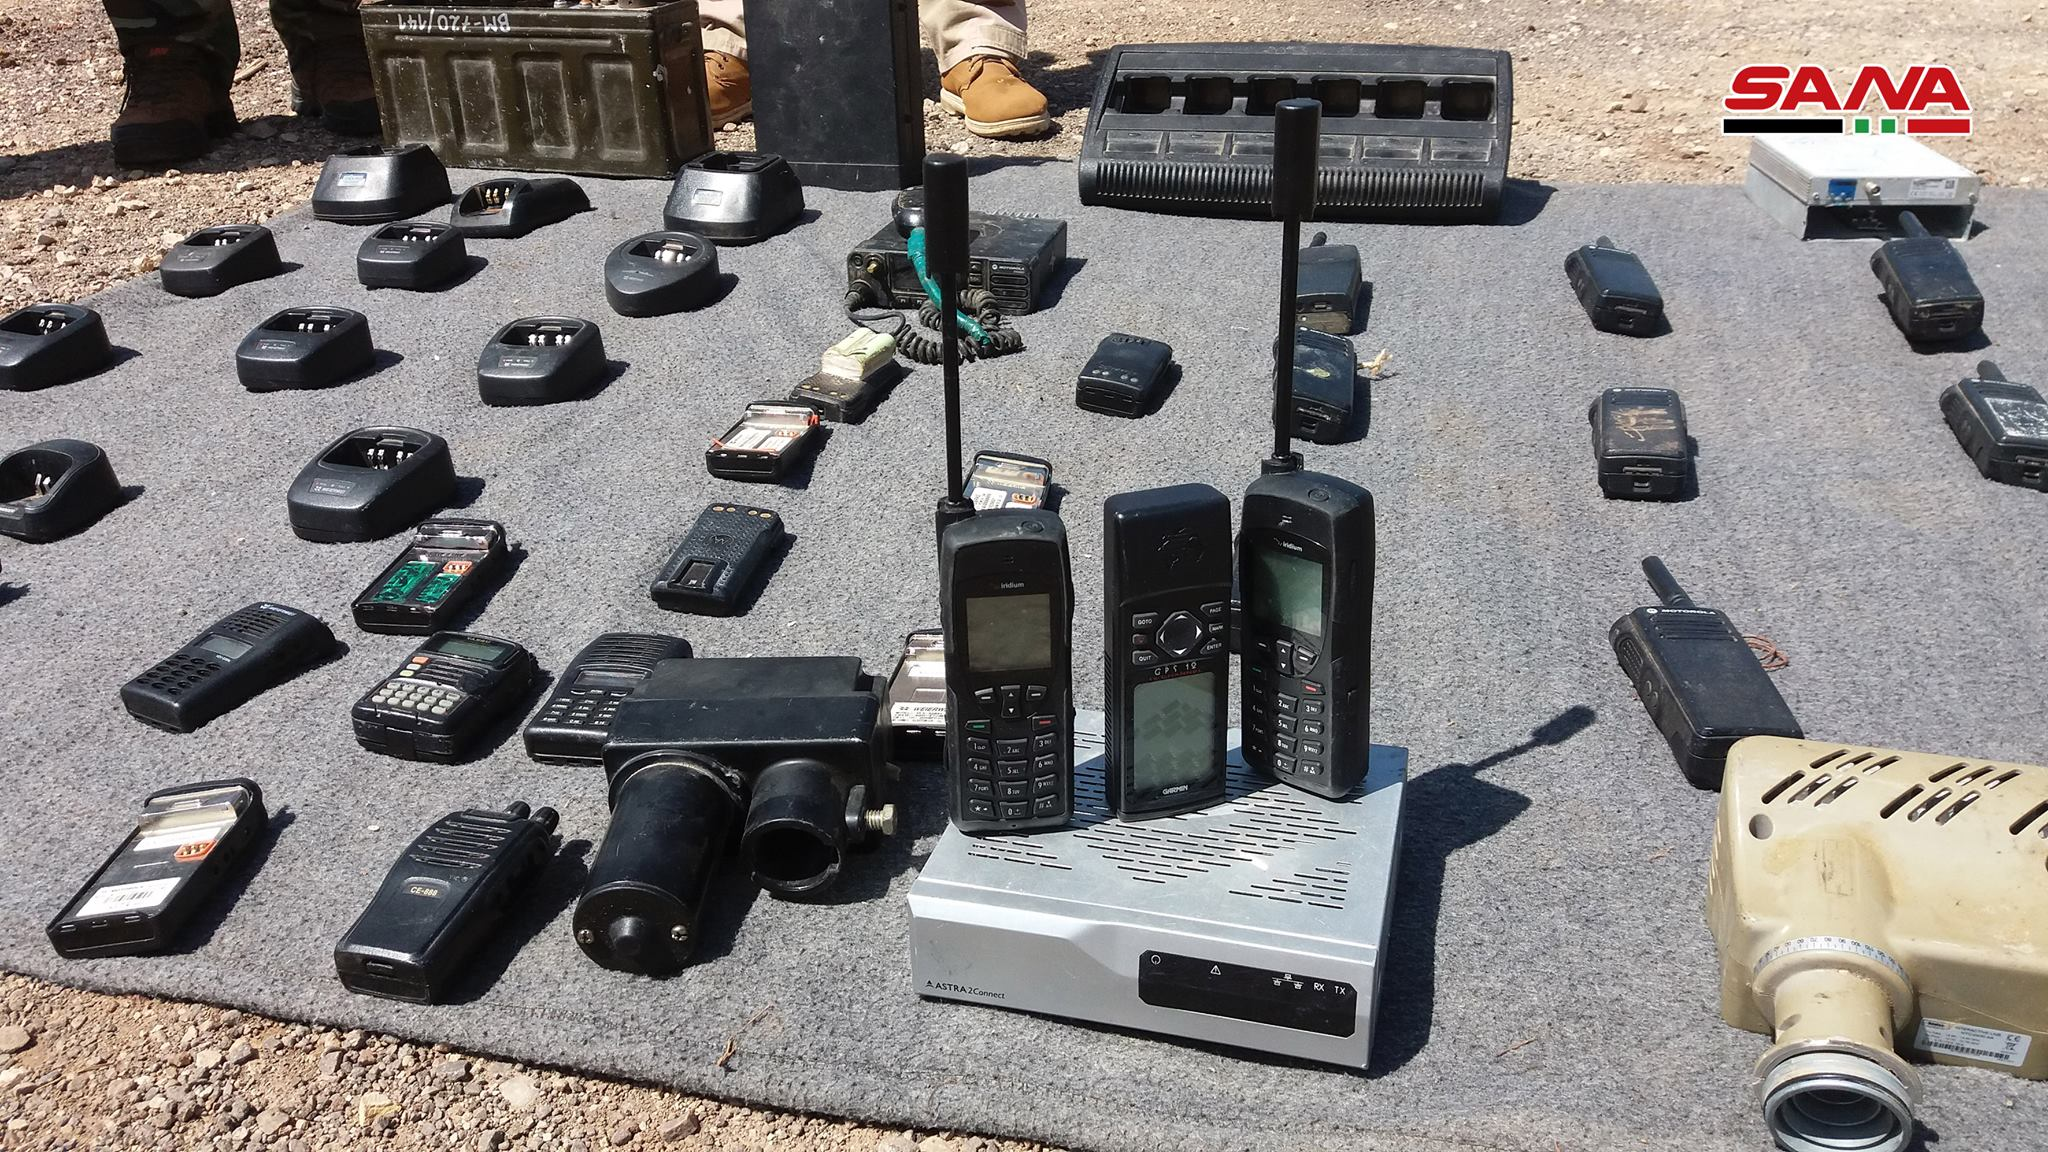 Syrian Army Uncovers Weapons, Advanced Communication Systems In Quneitra (Video, Photos)